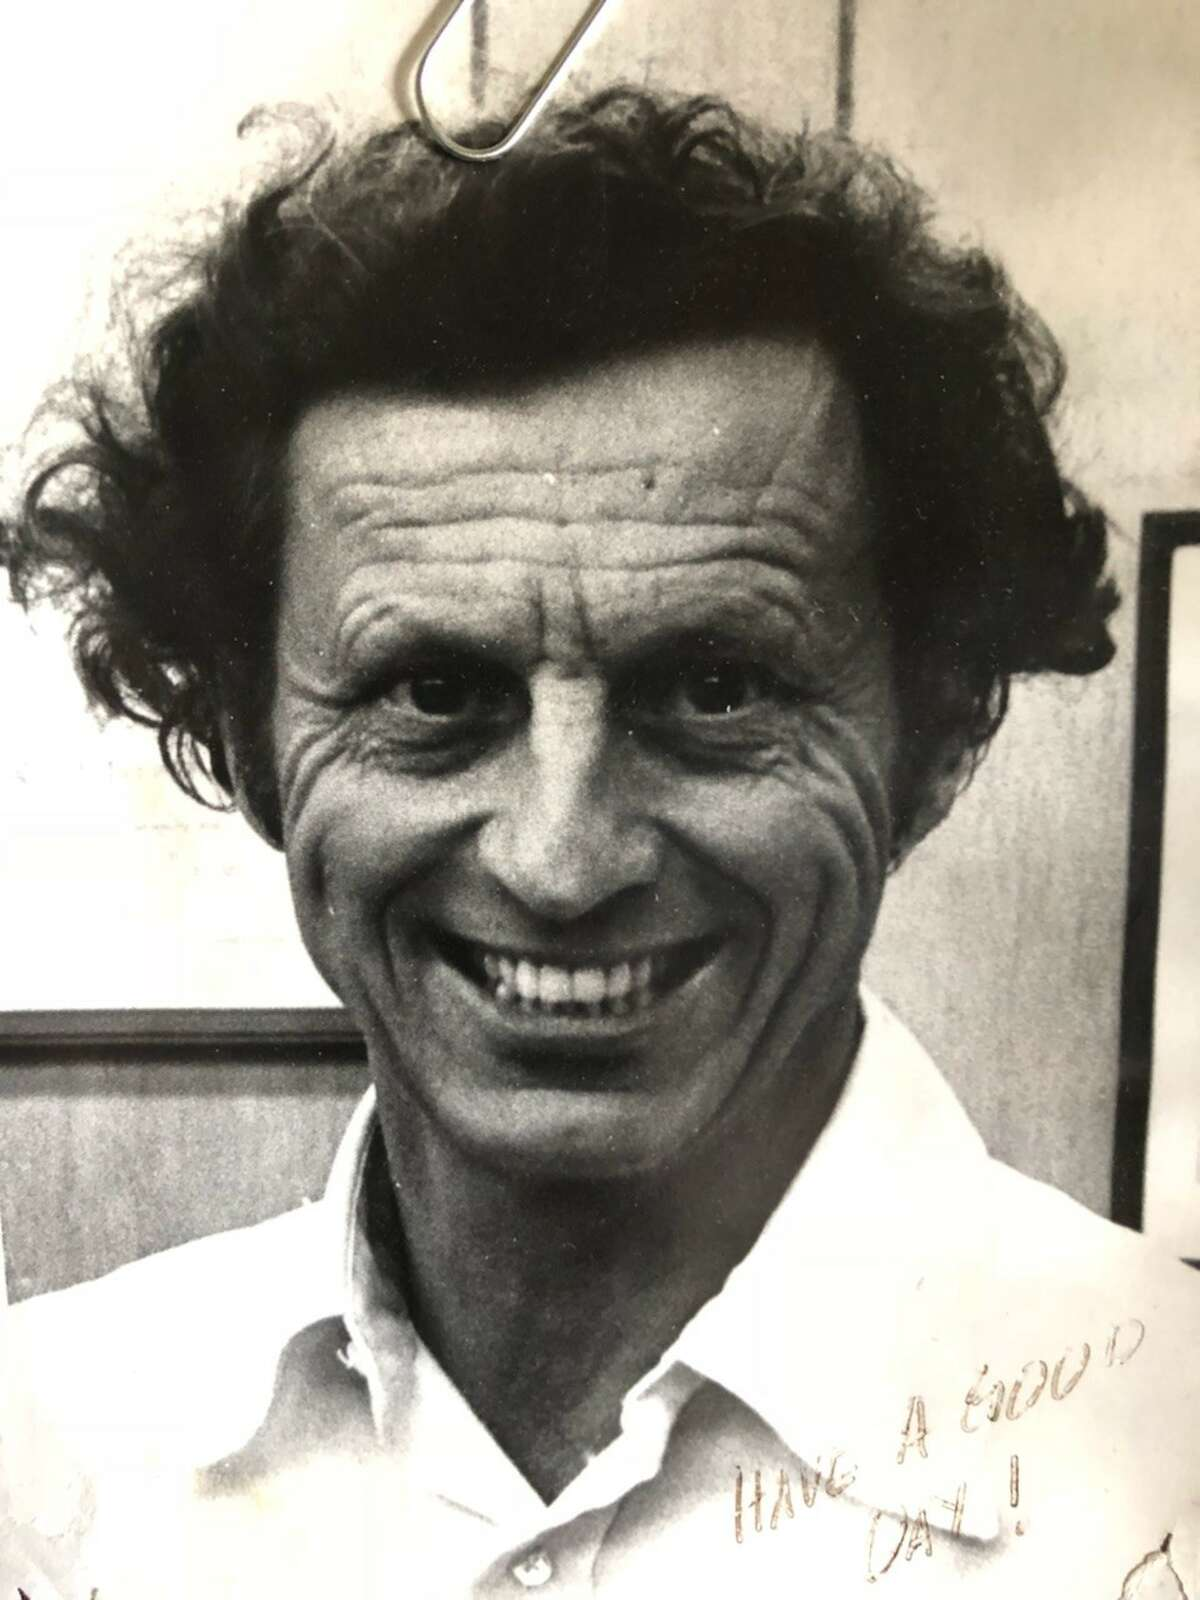 Sherman H. Hink in the early 1970s around the time he acquired the signage company from its previous owner, father-in-law Stanley Fitzgerald